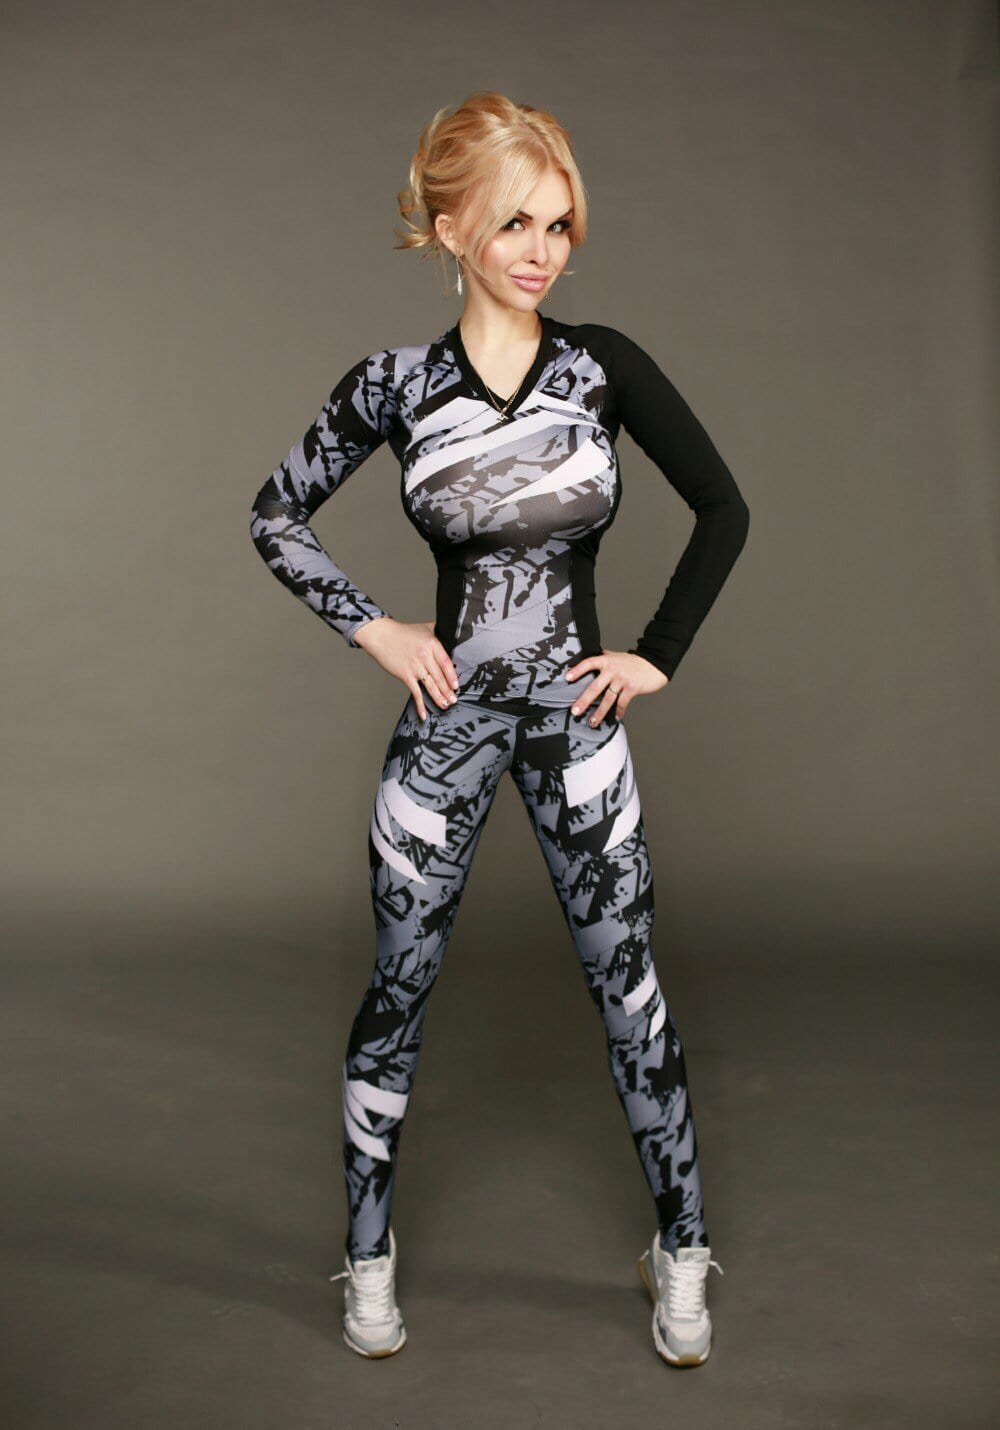 brassiere legging camouflages